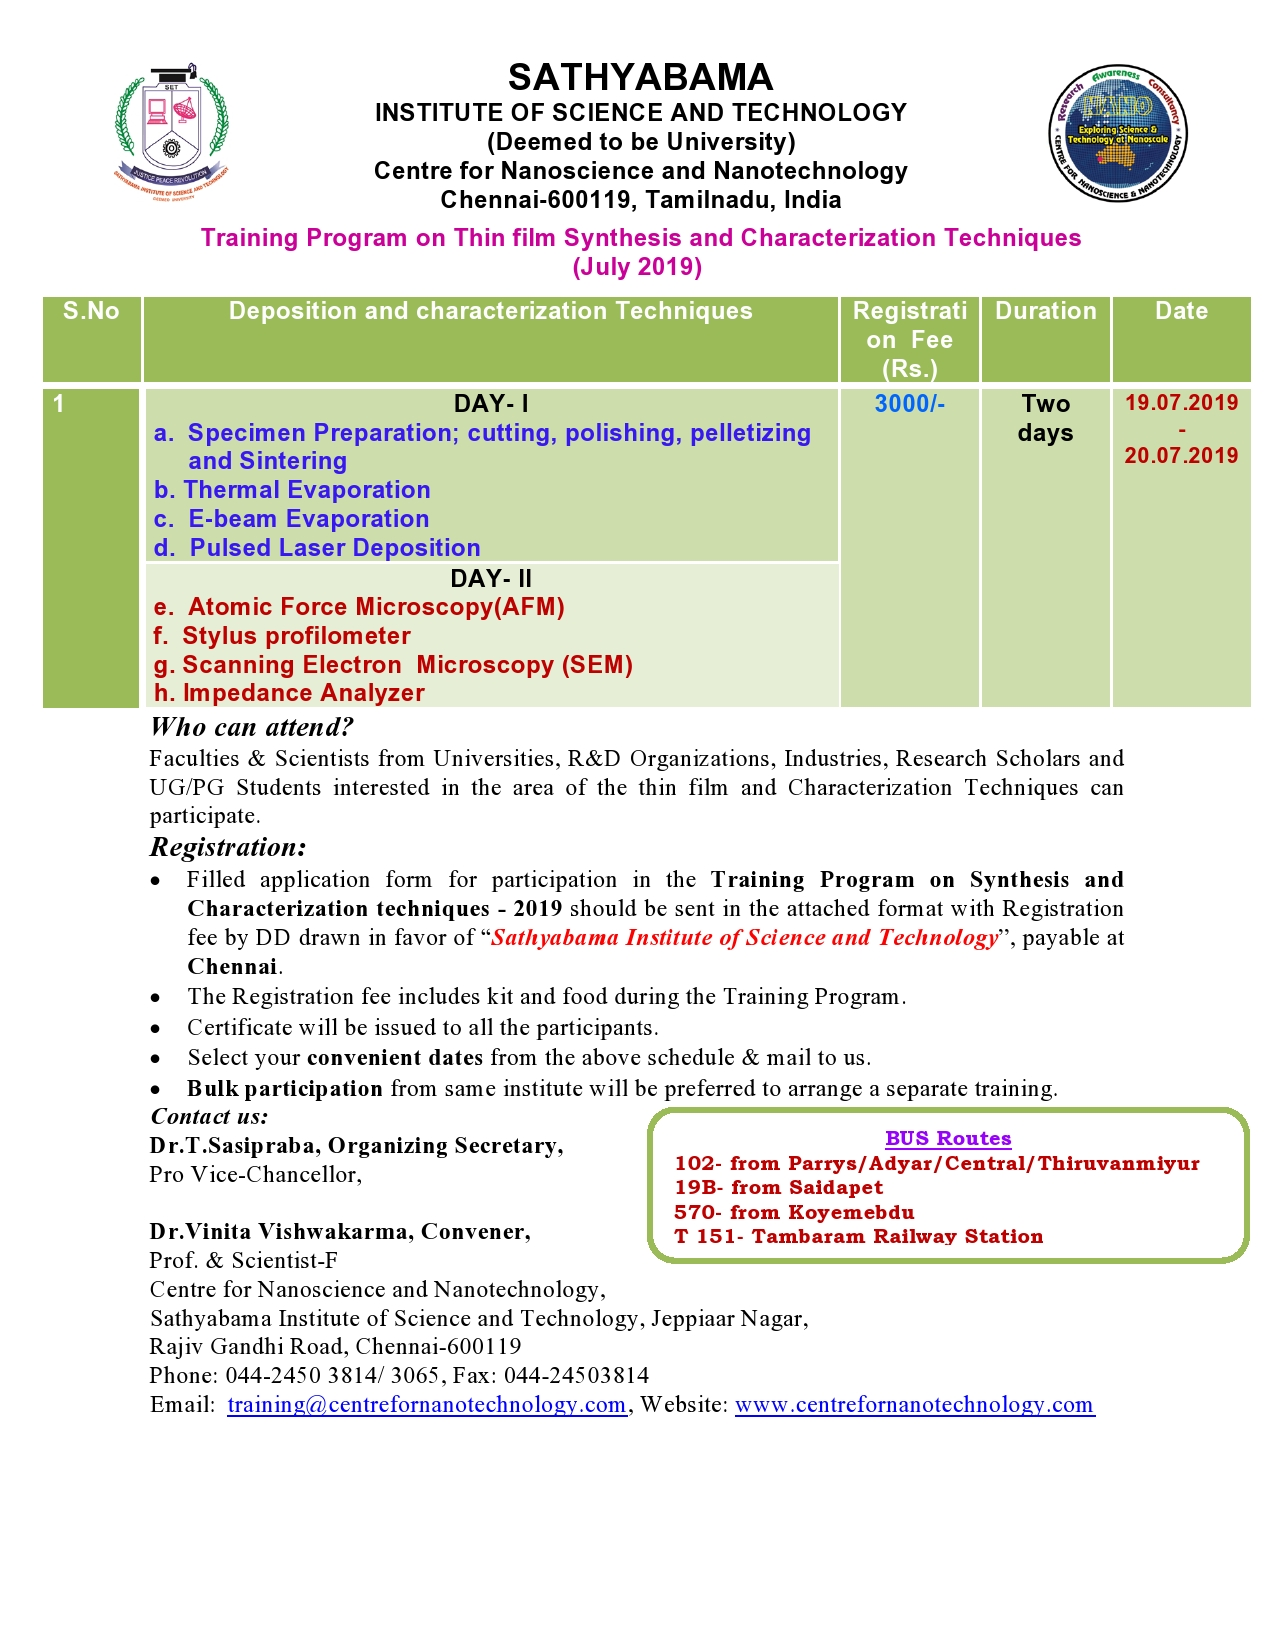 Training Program on Thin film Synthesis and Characterization Techniques 2019